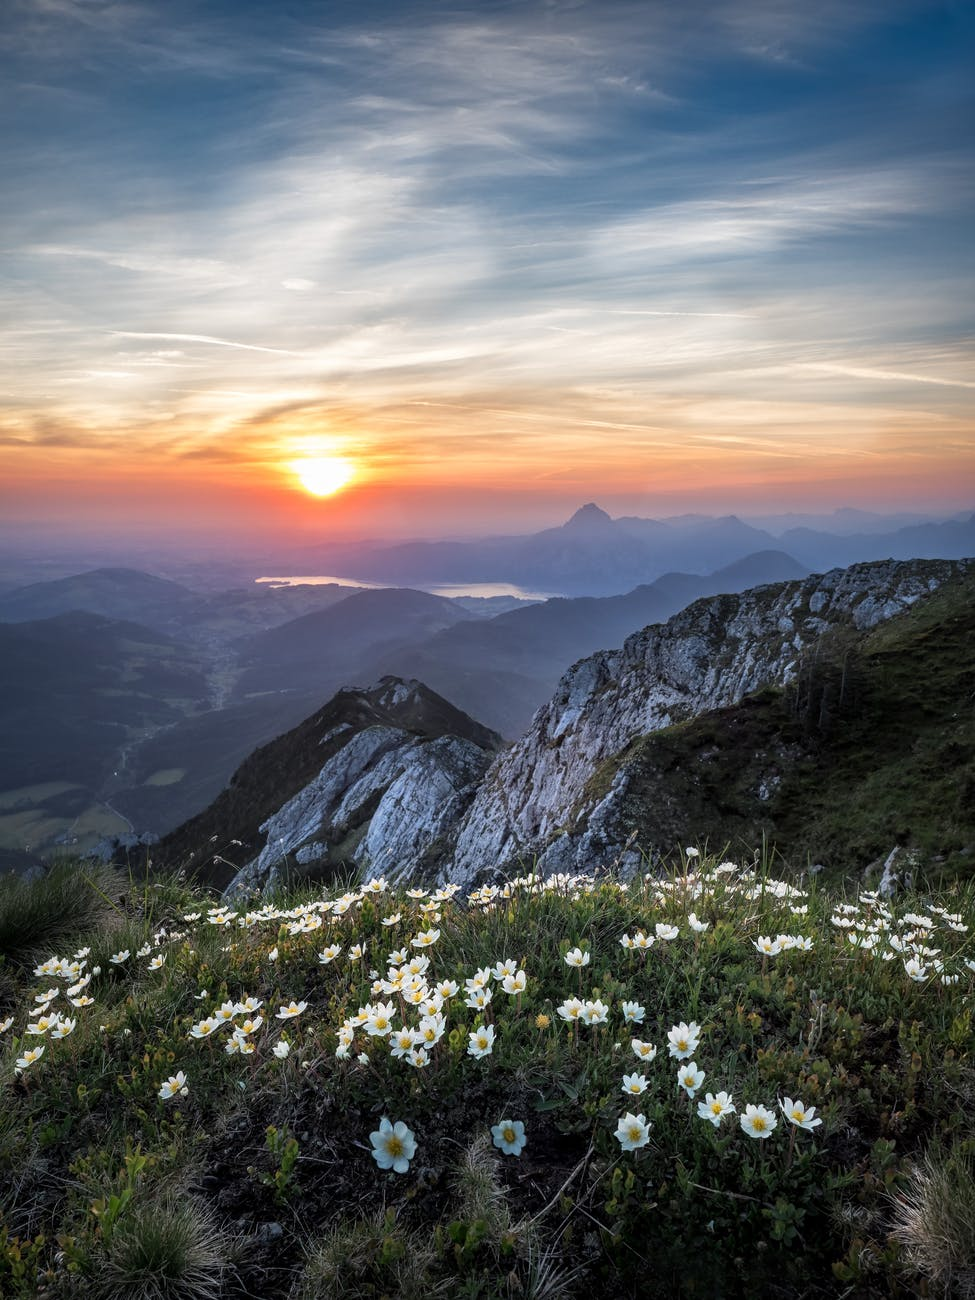 Picturesque scene of mountain with flowers and sunrise representing letting go